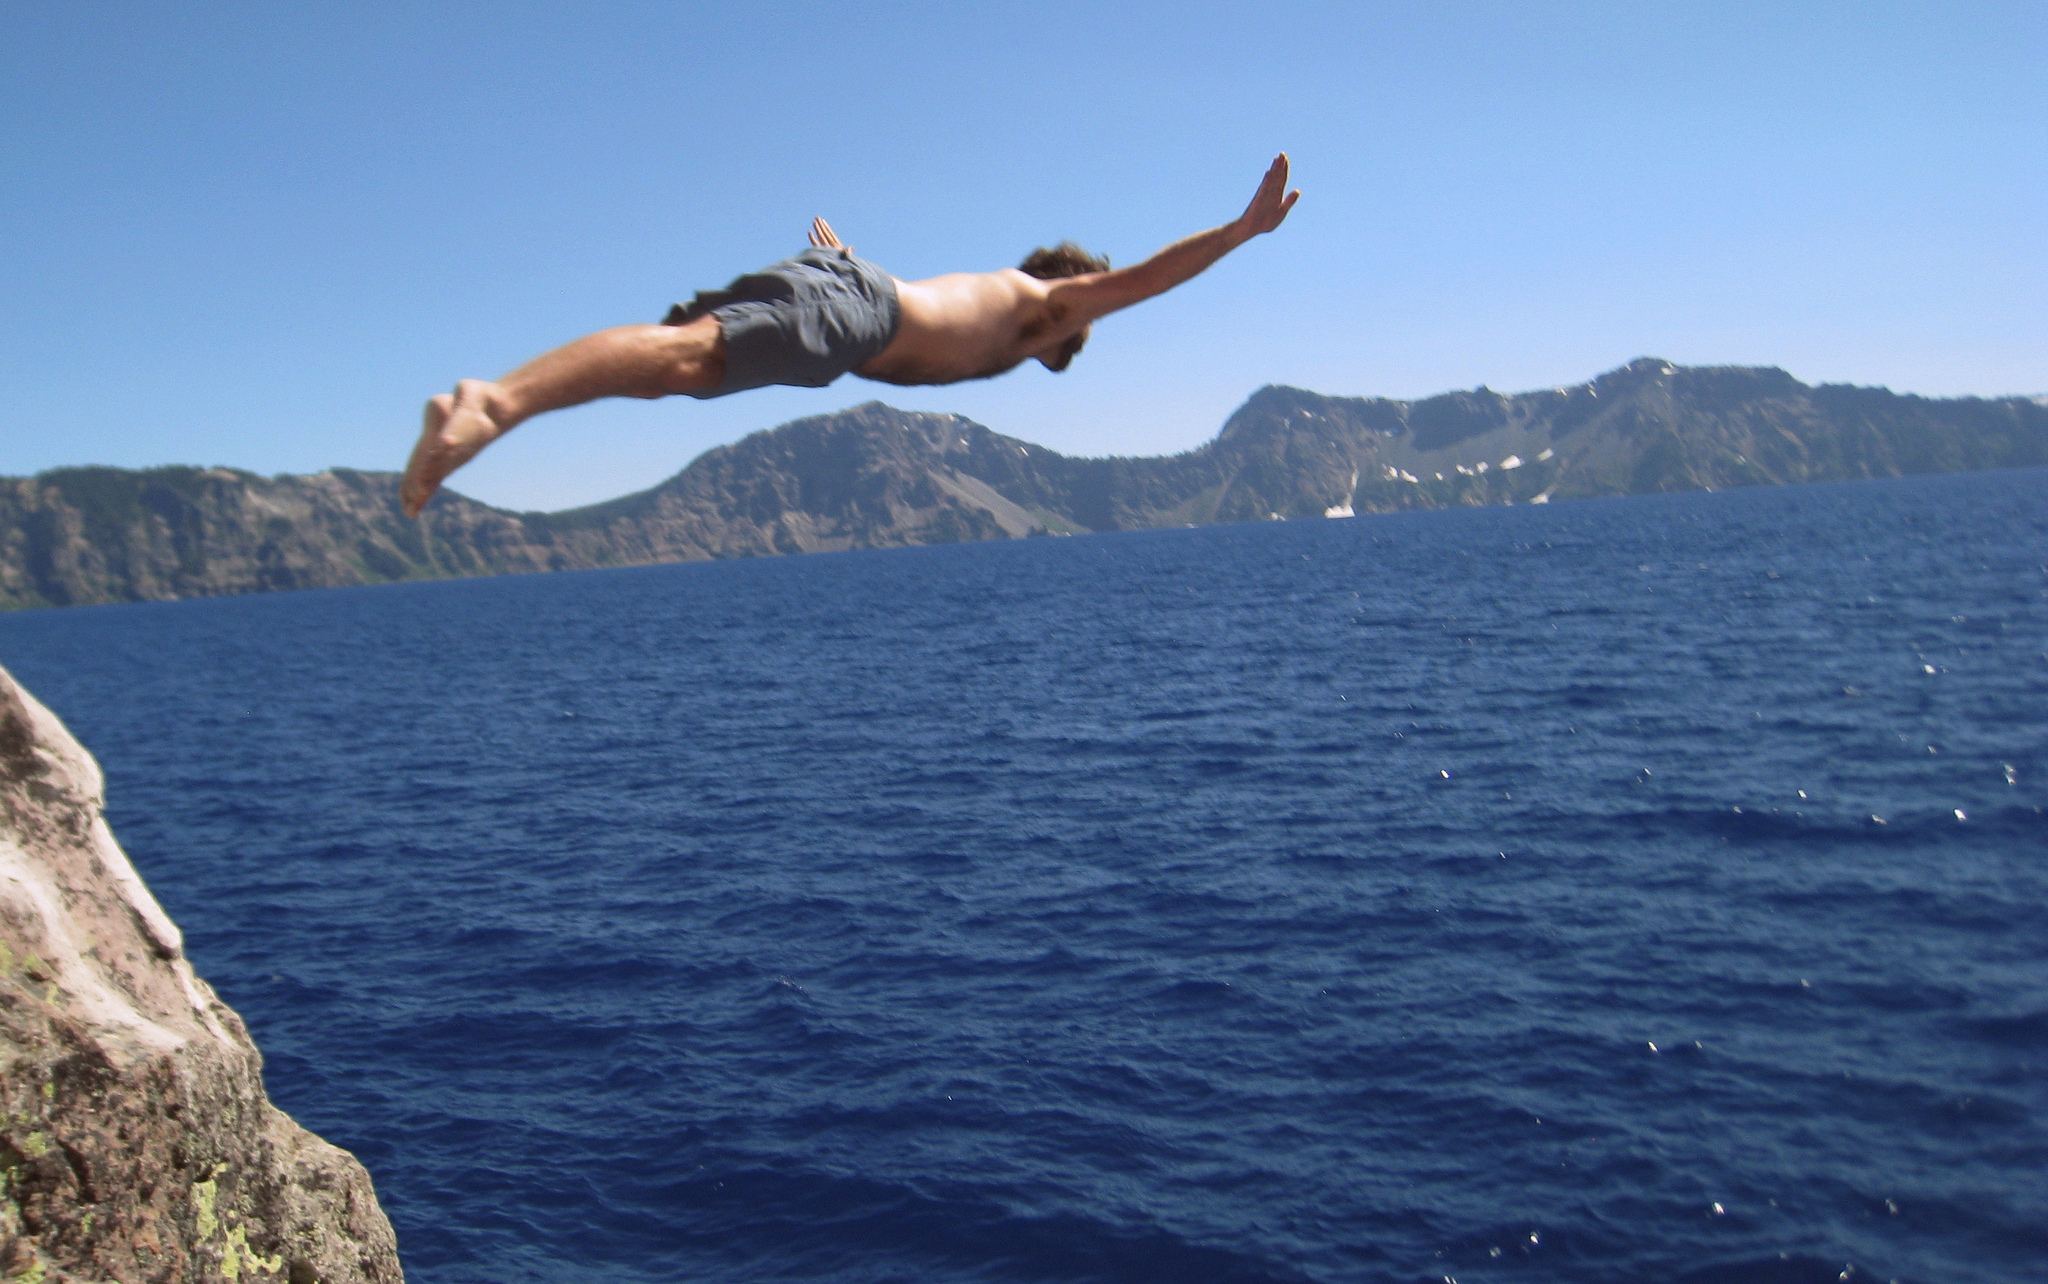 World 39 s best cliff diving drop it like it 39 s hot - Highest cliff dive ever ...